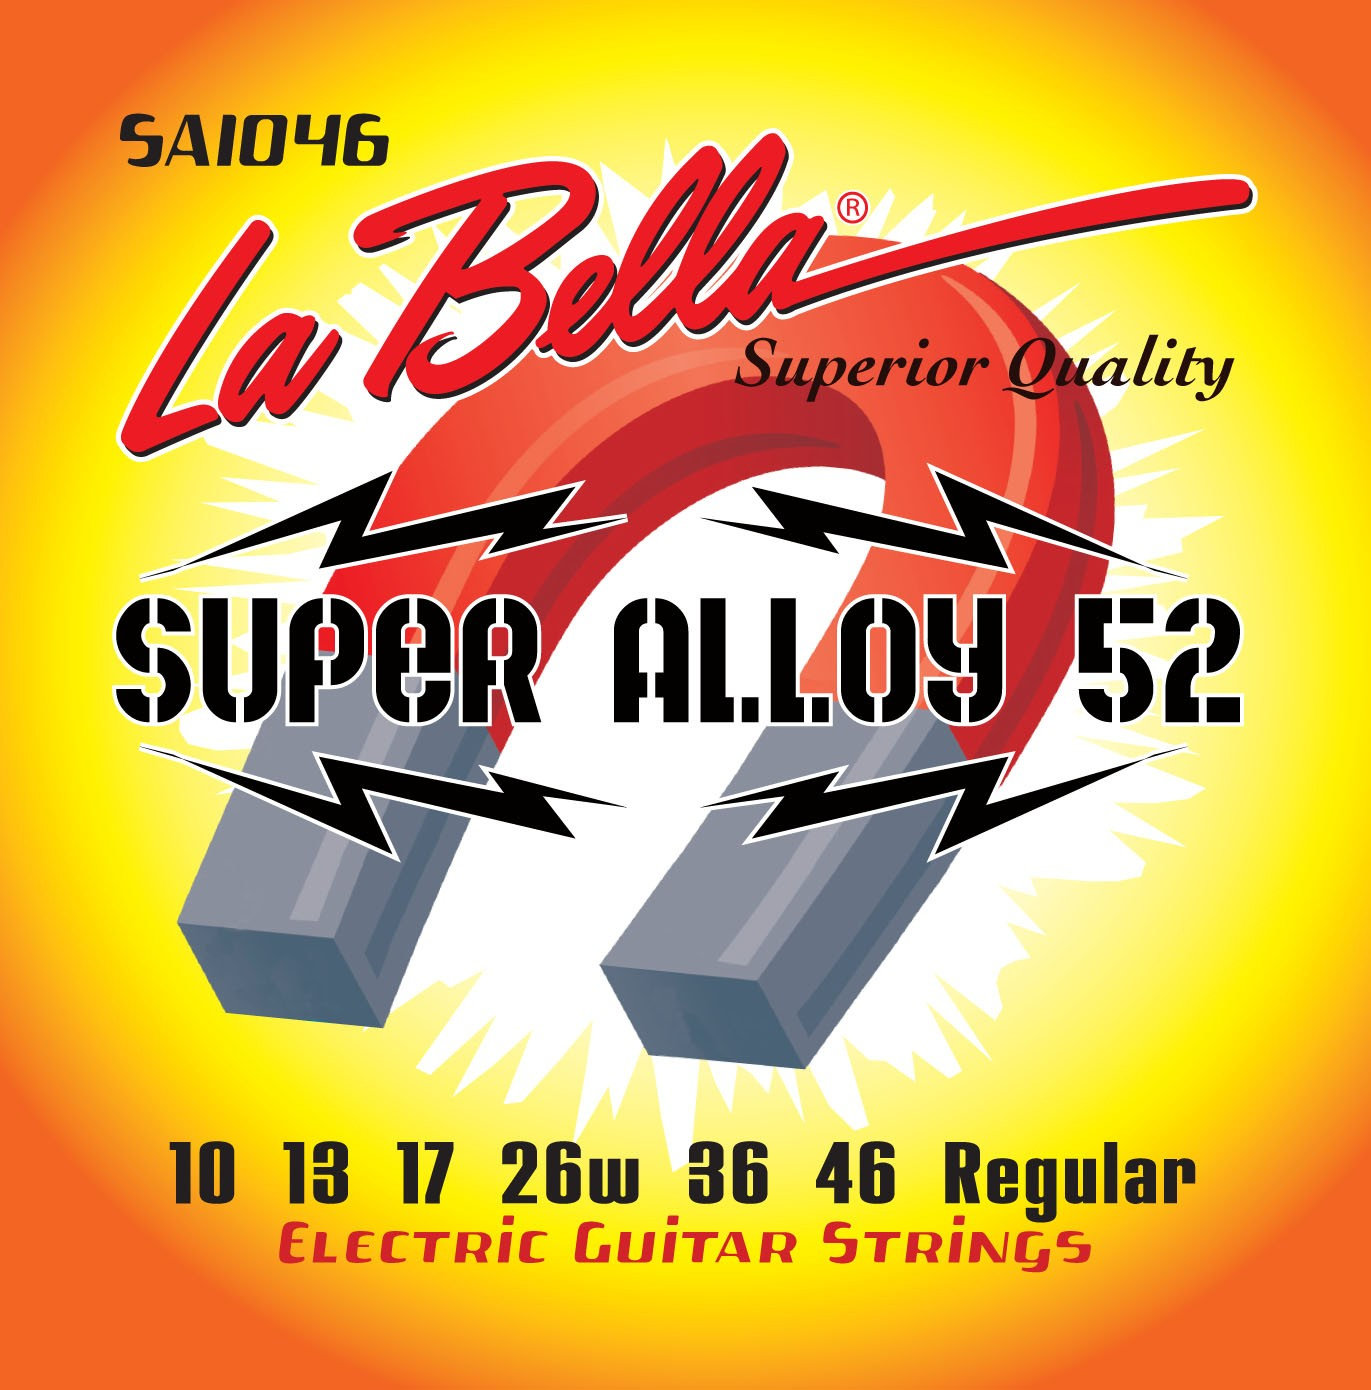 La Bella Electric Guitar Strings - Super Alloy 52